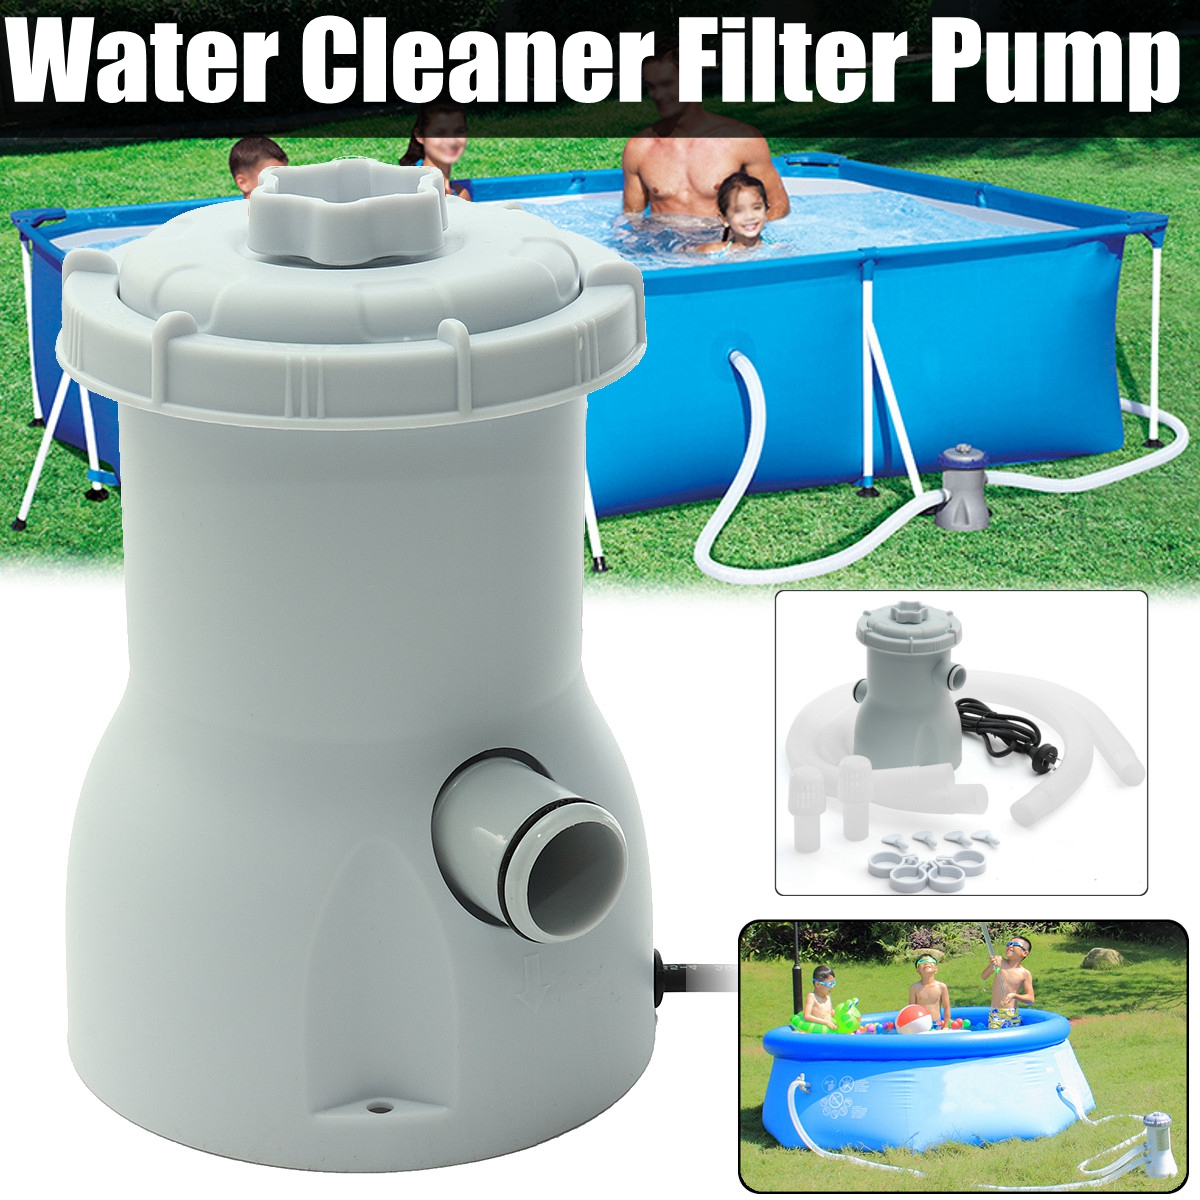 220V Electric Filter Pump Swimming Pool Filter Pump Water Clean Clear Dirty Pool Pond Pumps Filter/swimming Pool Water Cleaner vilead swimming pool backrest with seat family swimming pool summer baby swimming pool wtih high efficiency 220v electric pump